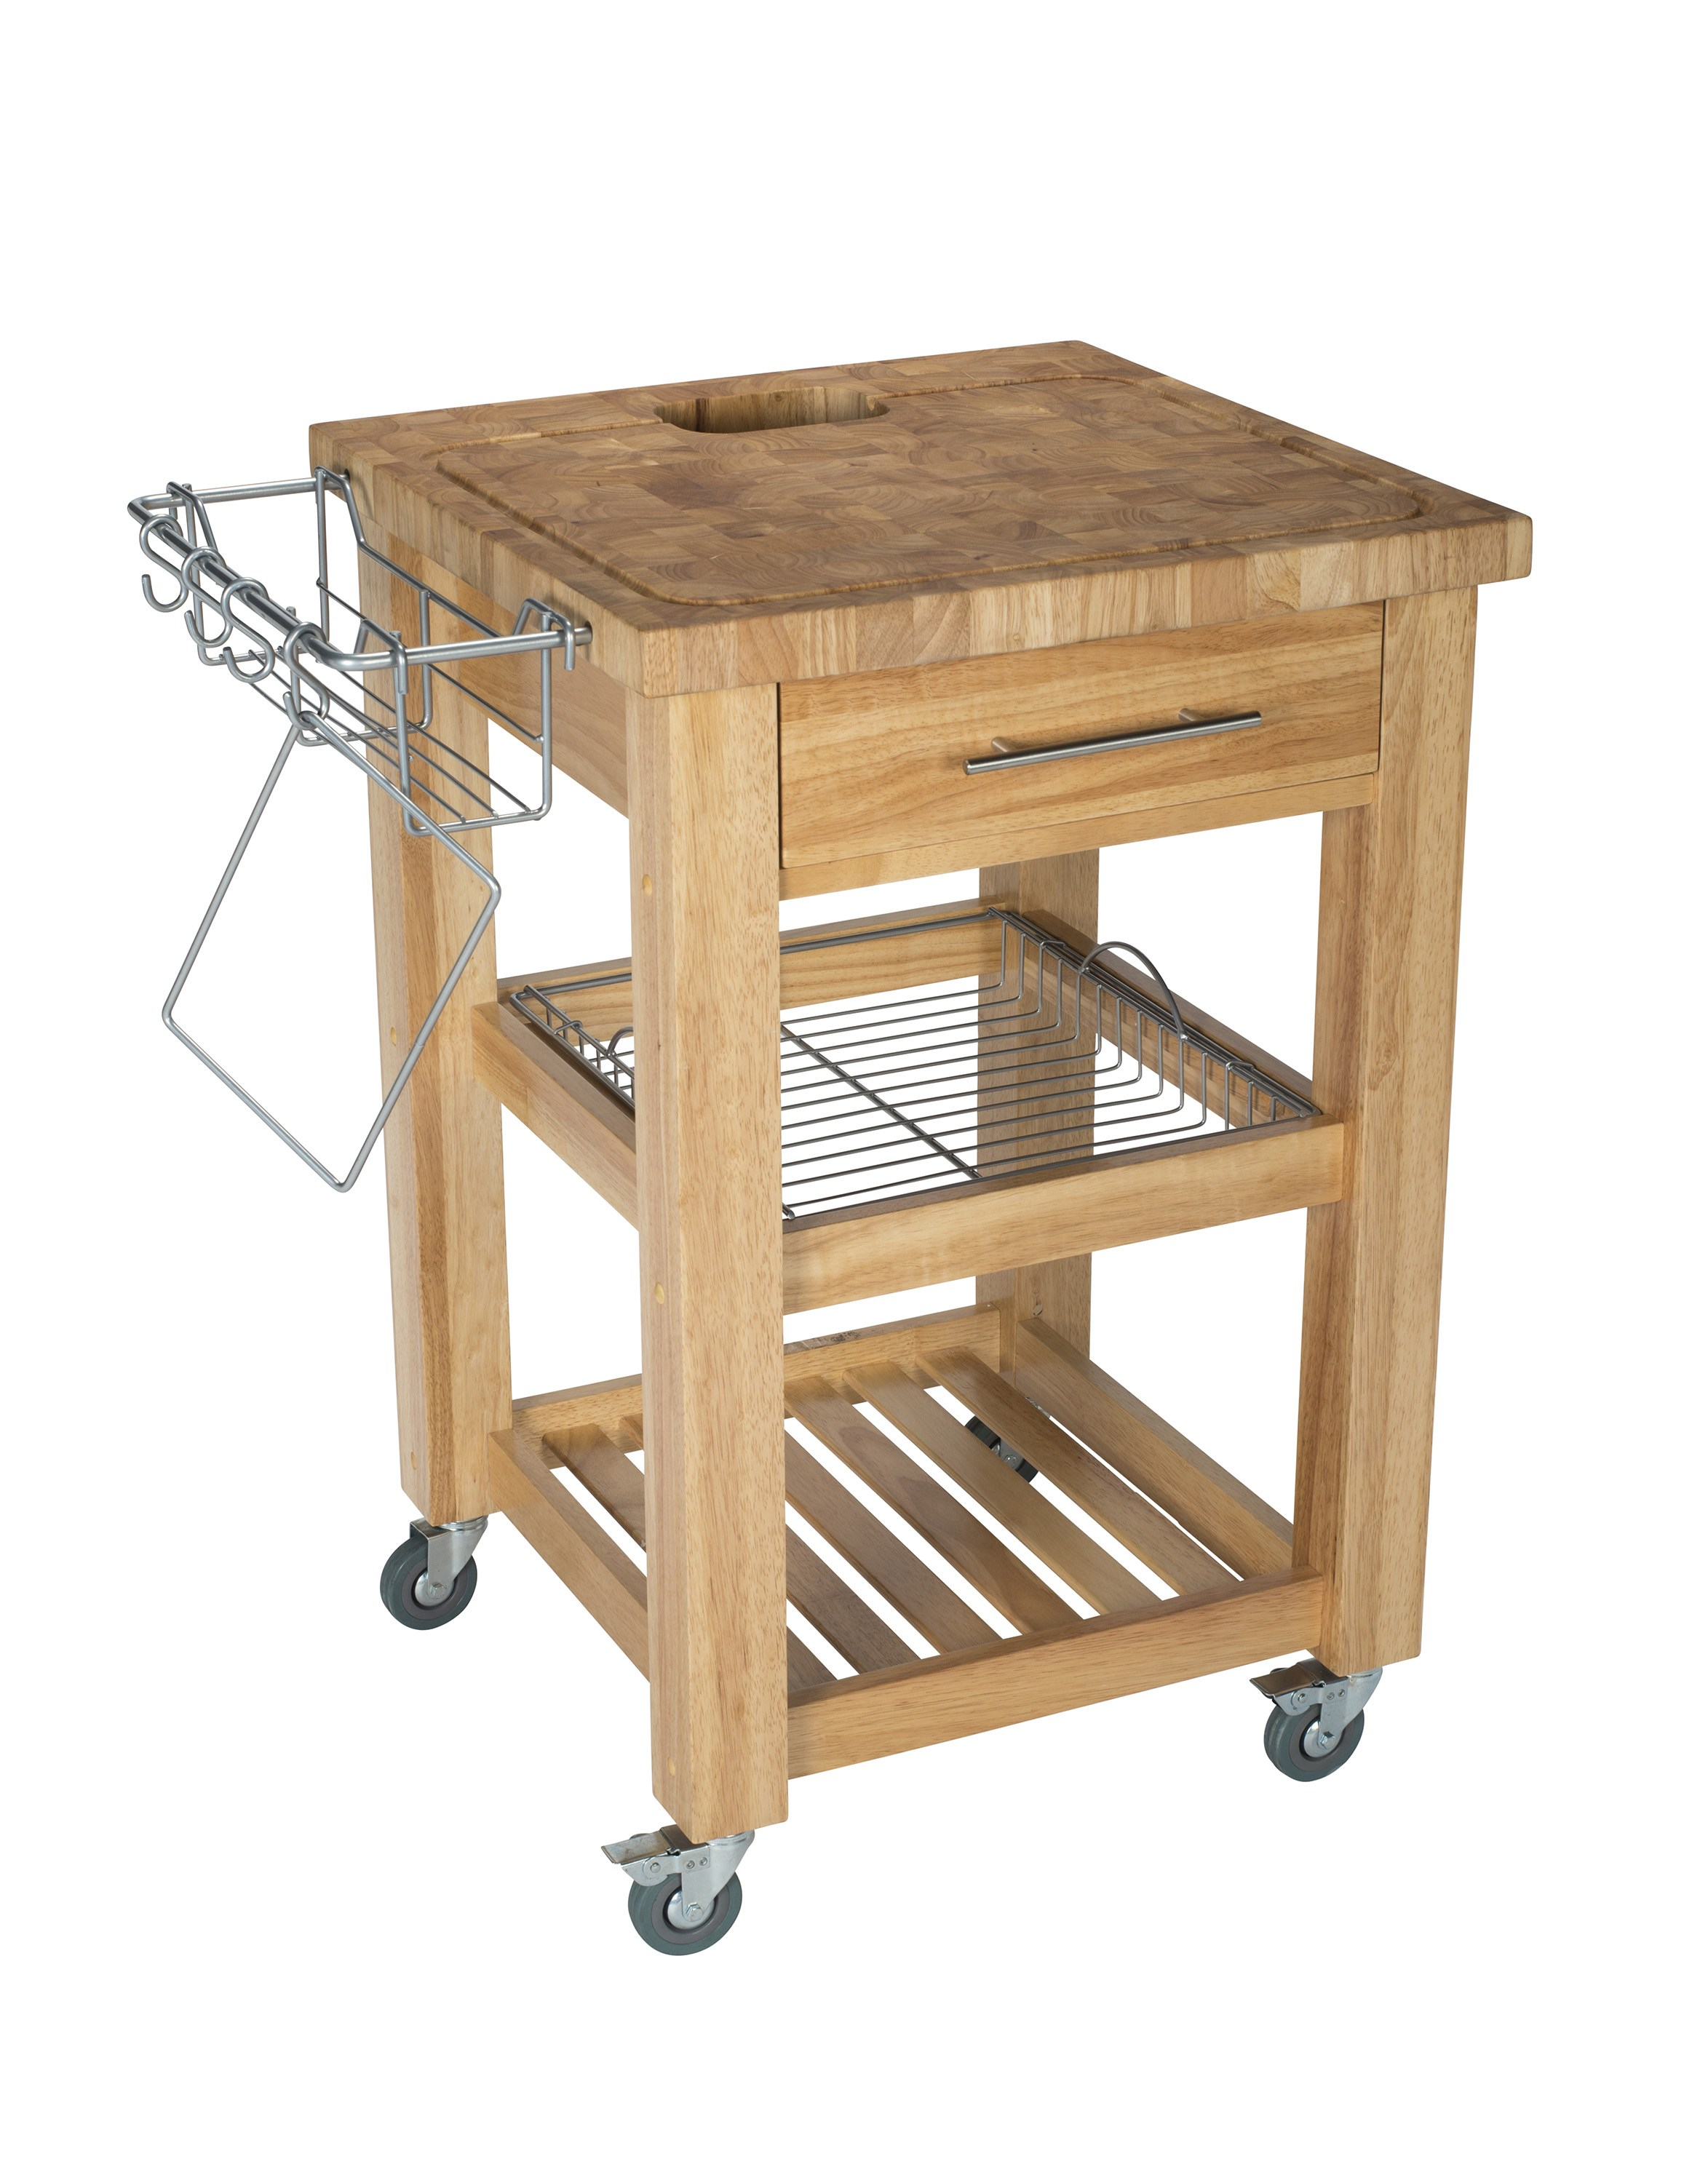 Hilarious Chris Grooved Drop Slot Rubberwood Work Station 24 X 24 57b40992e2d49 Empire Island Kitchen Workstation Kitchen Island Workstation Chris kitchen Kitchen Island Workstation